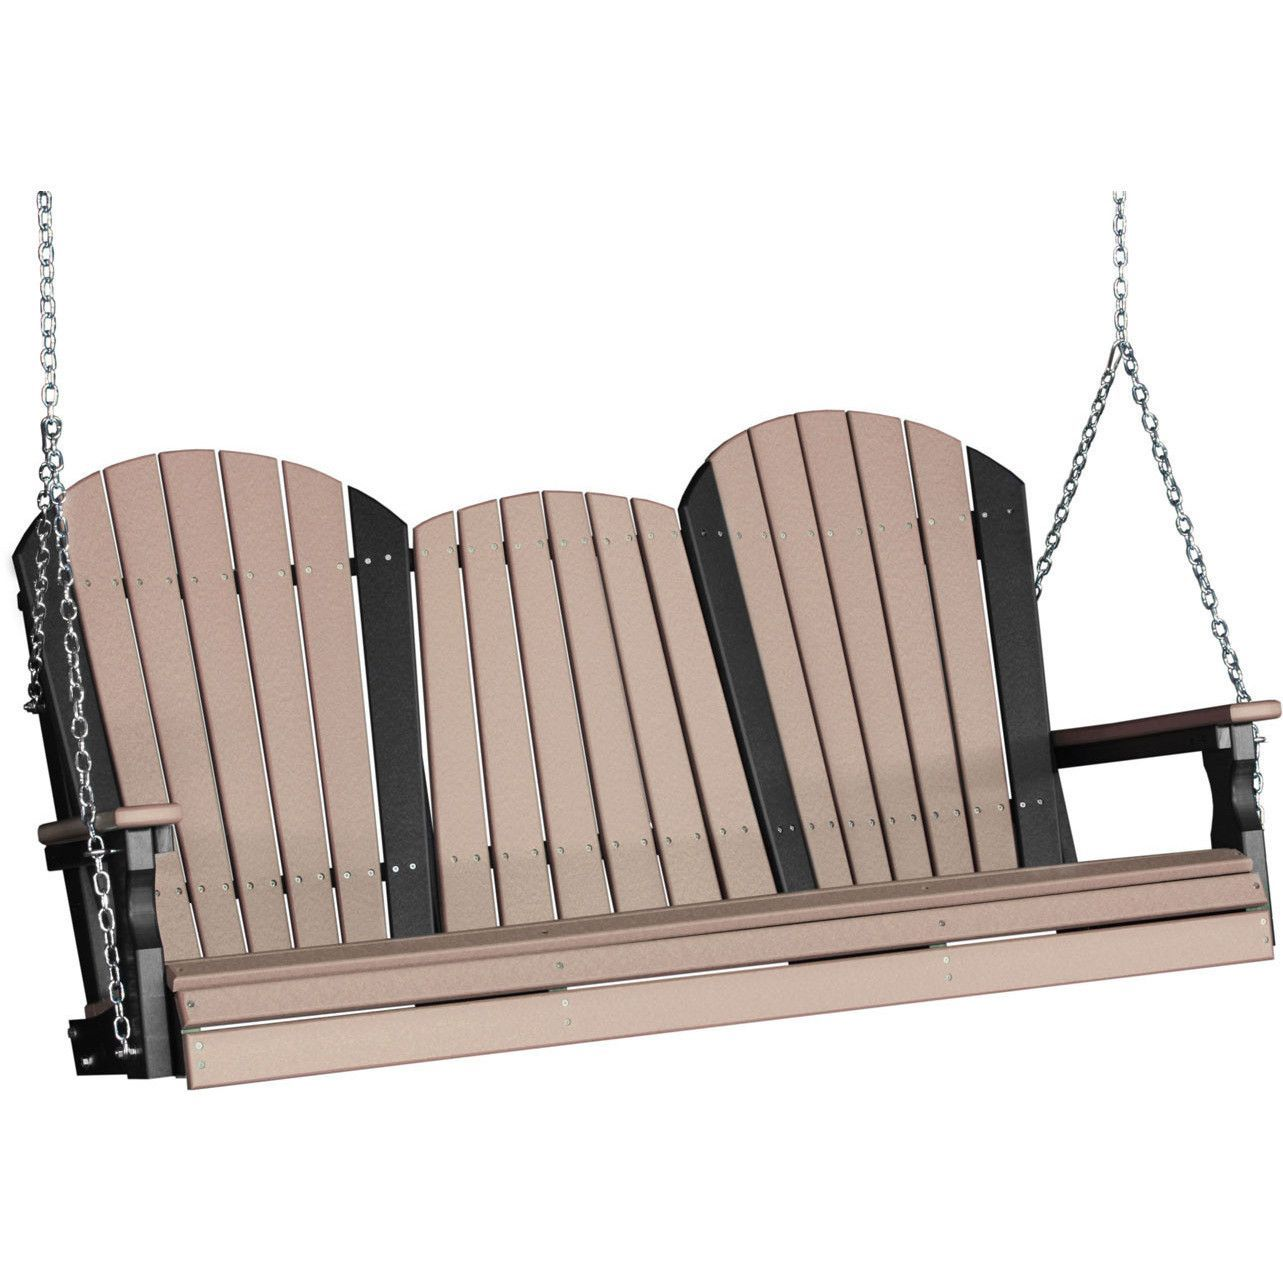 LuxCraft Adirondack 5ft. Recycled Plastic Porch Swing with